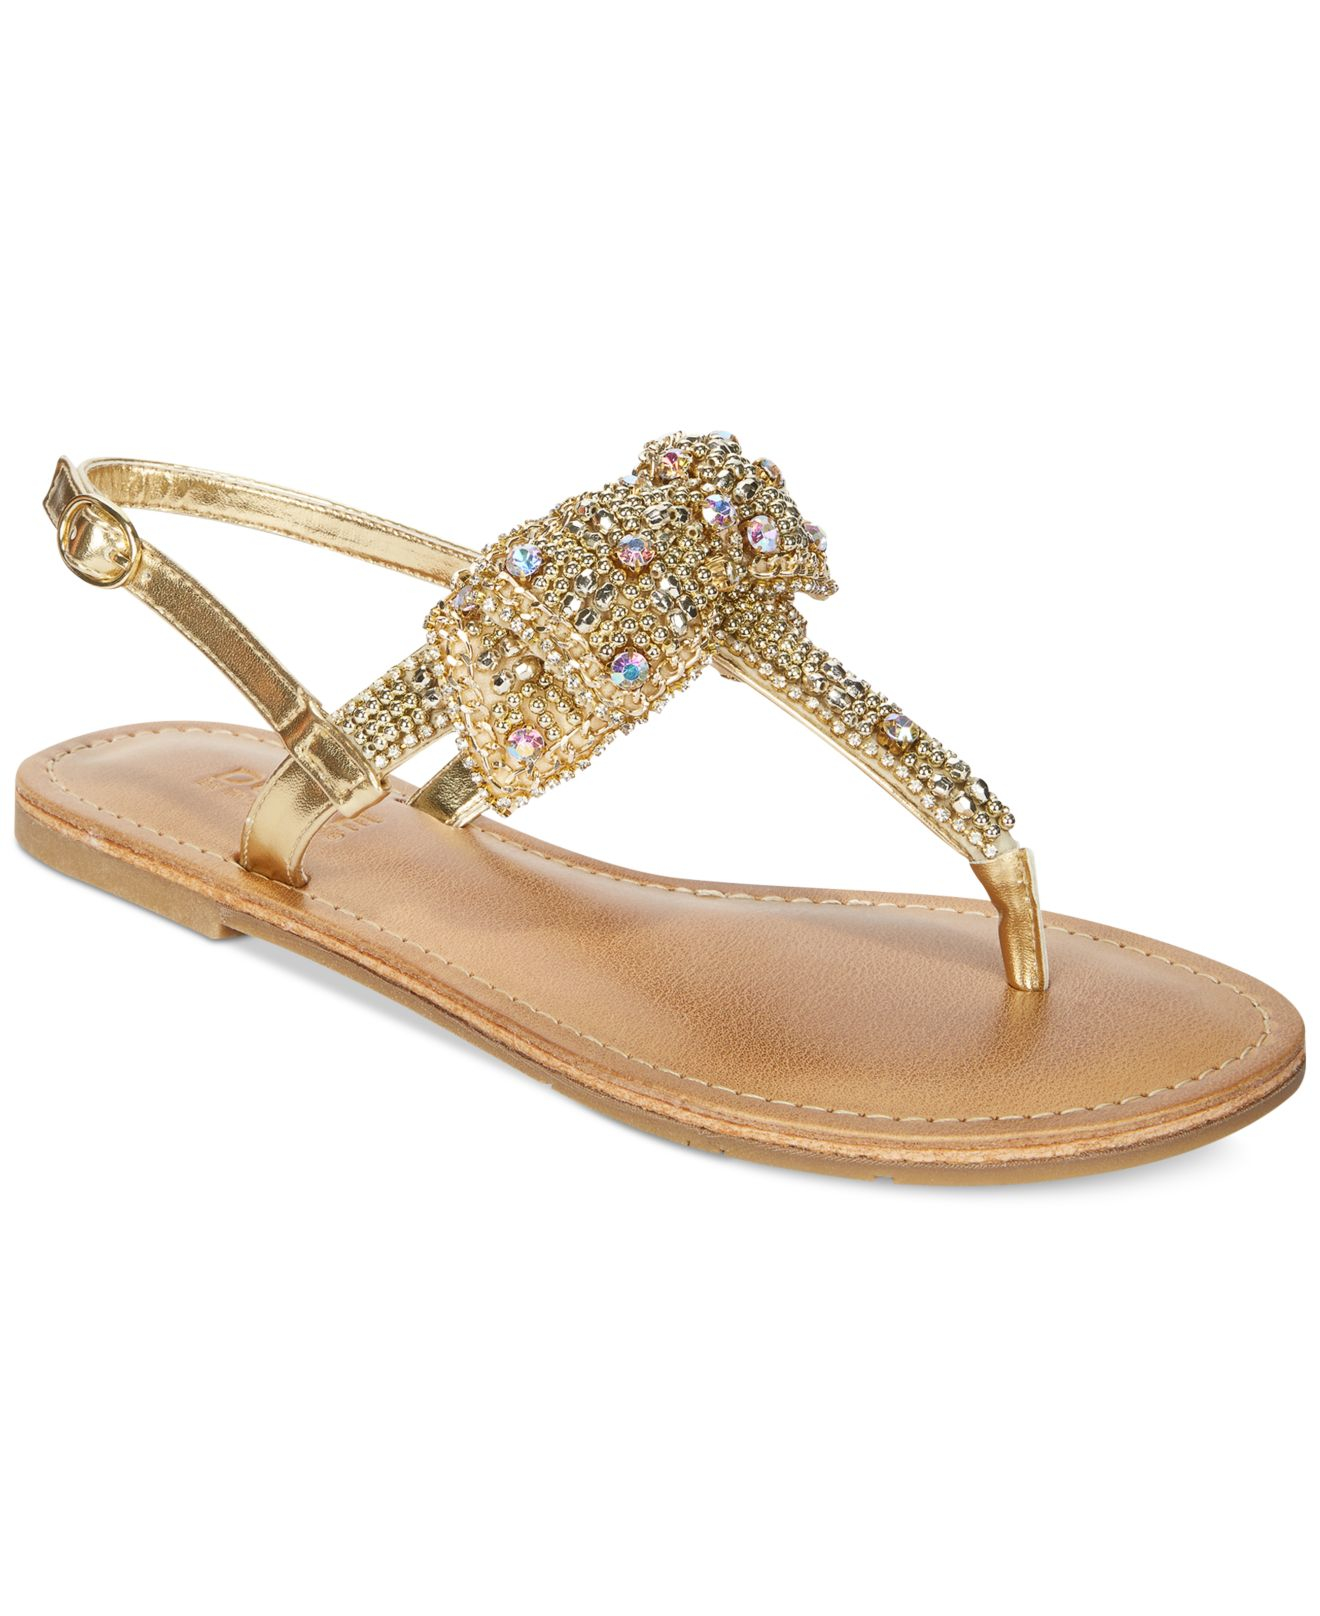 Womens rhinestone sandals